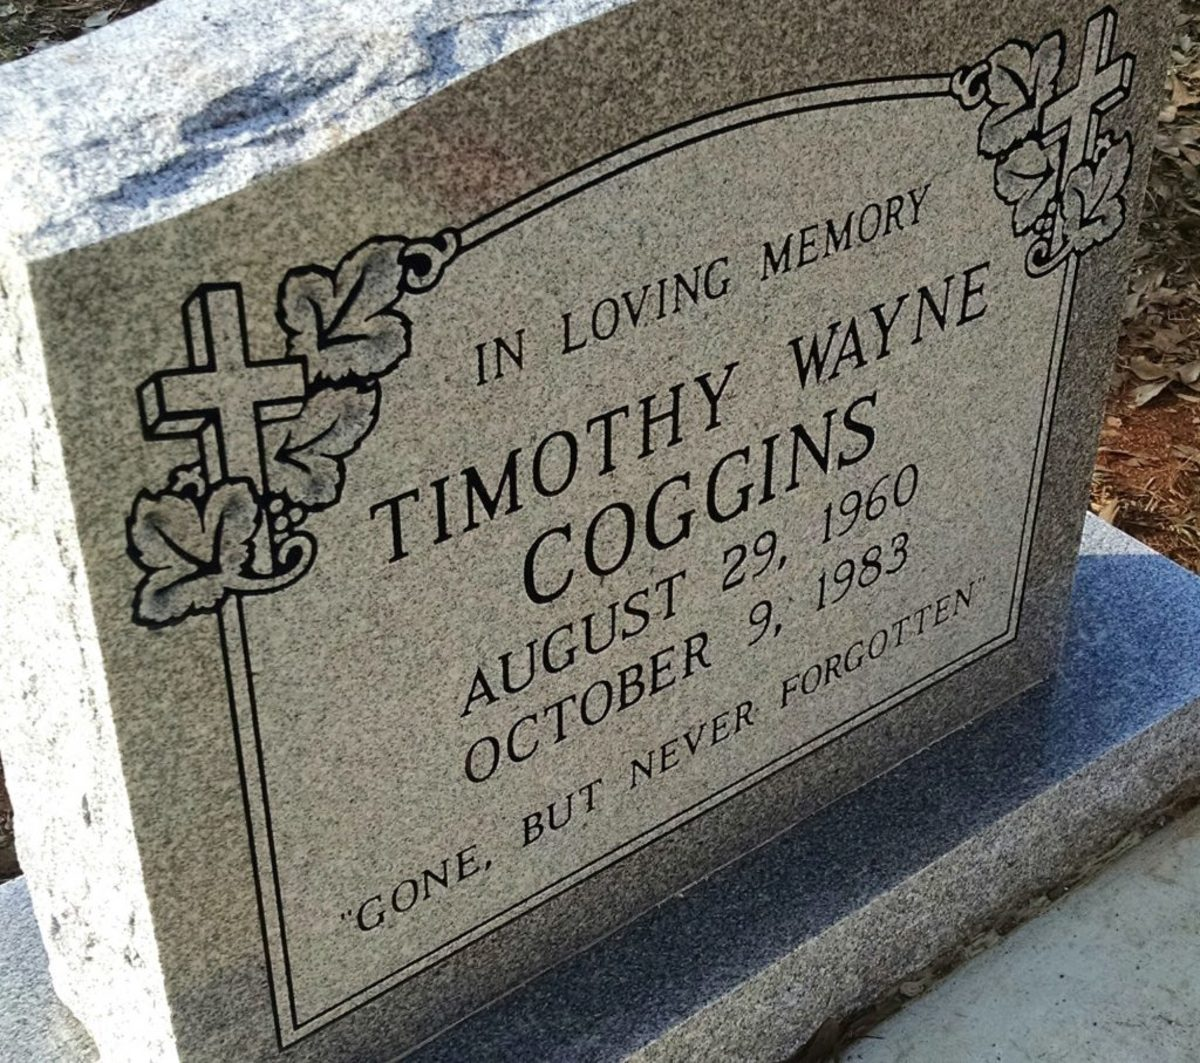 Timothy Coggins grave